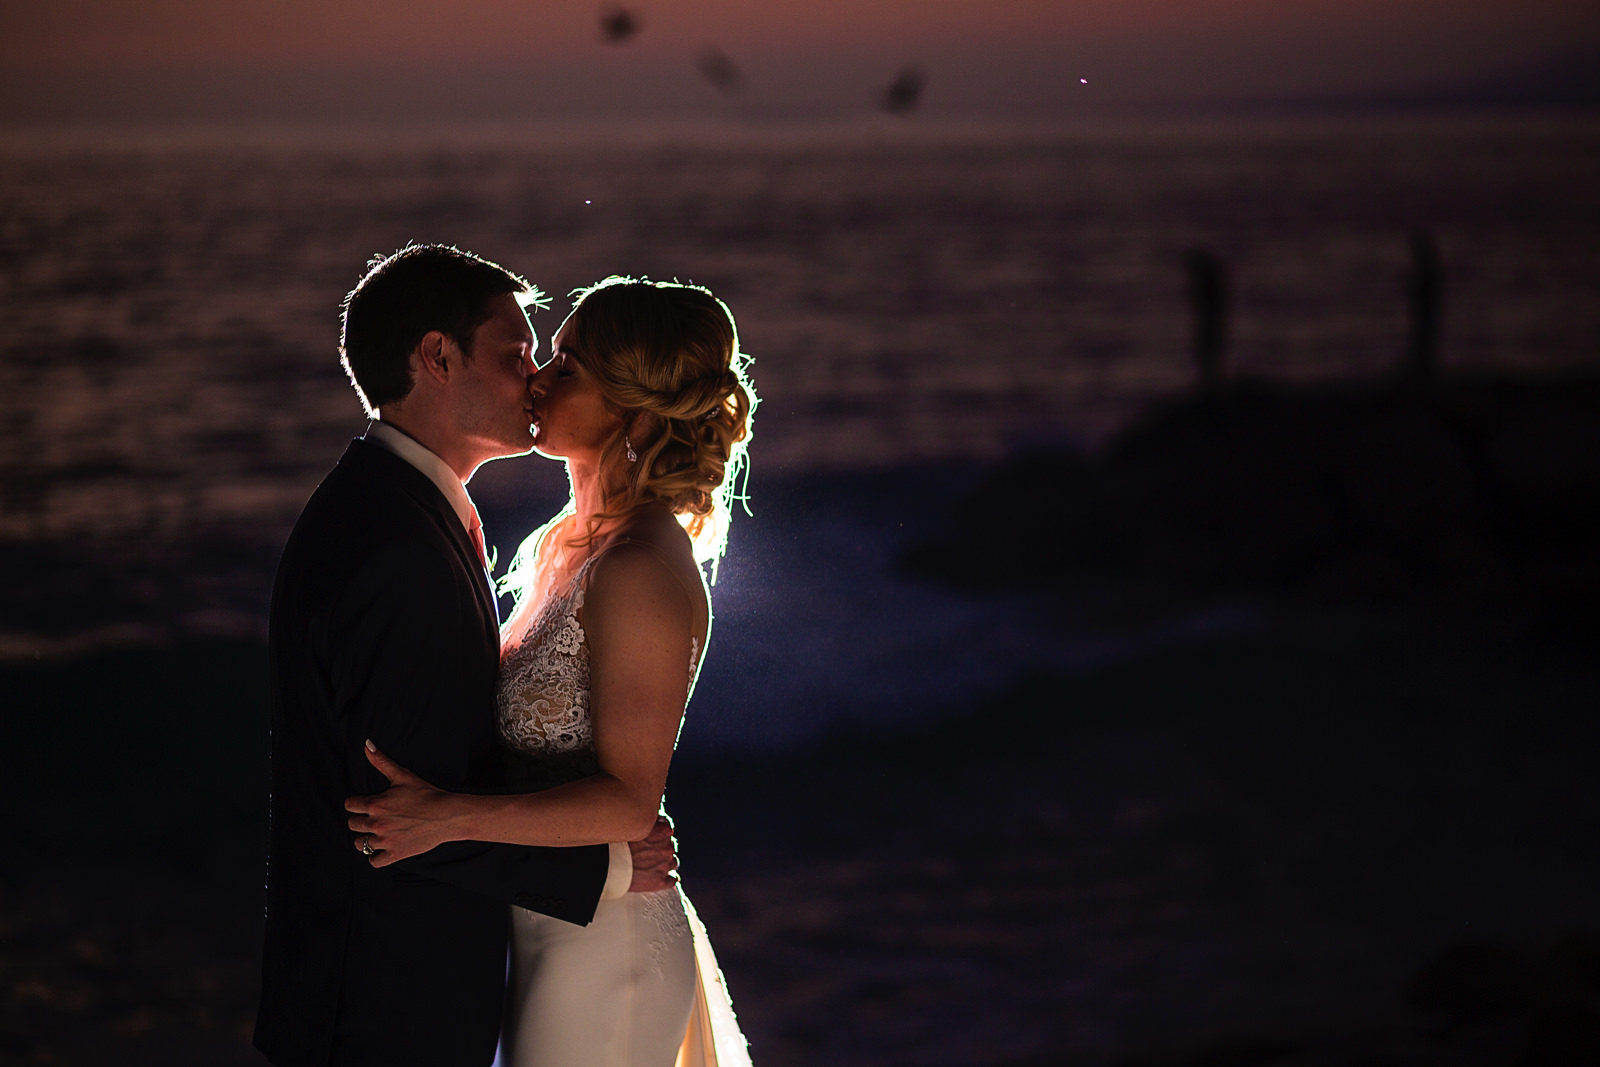 wedding-portrait-groom-bride-hotel-playa-fiesta.jpg